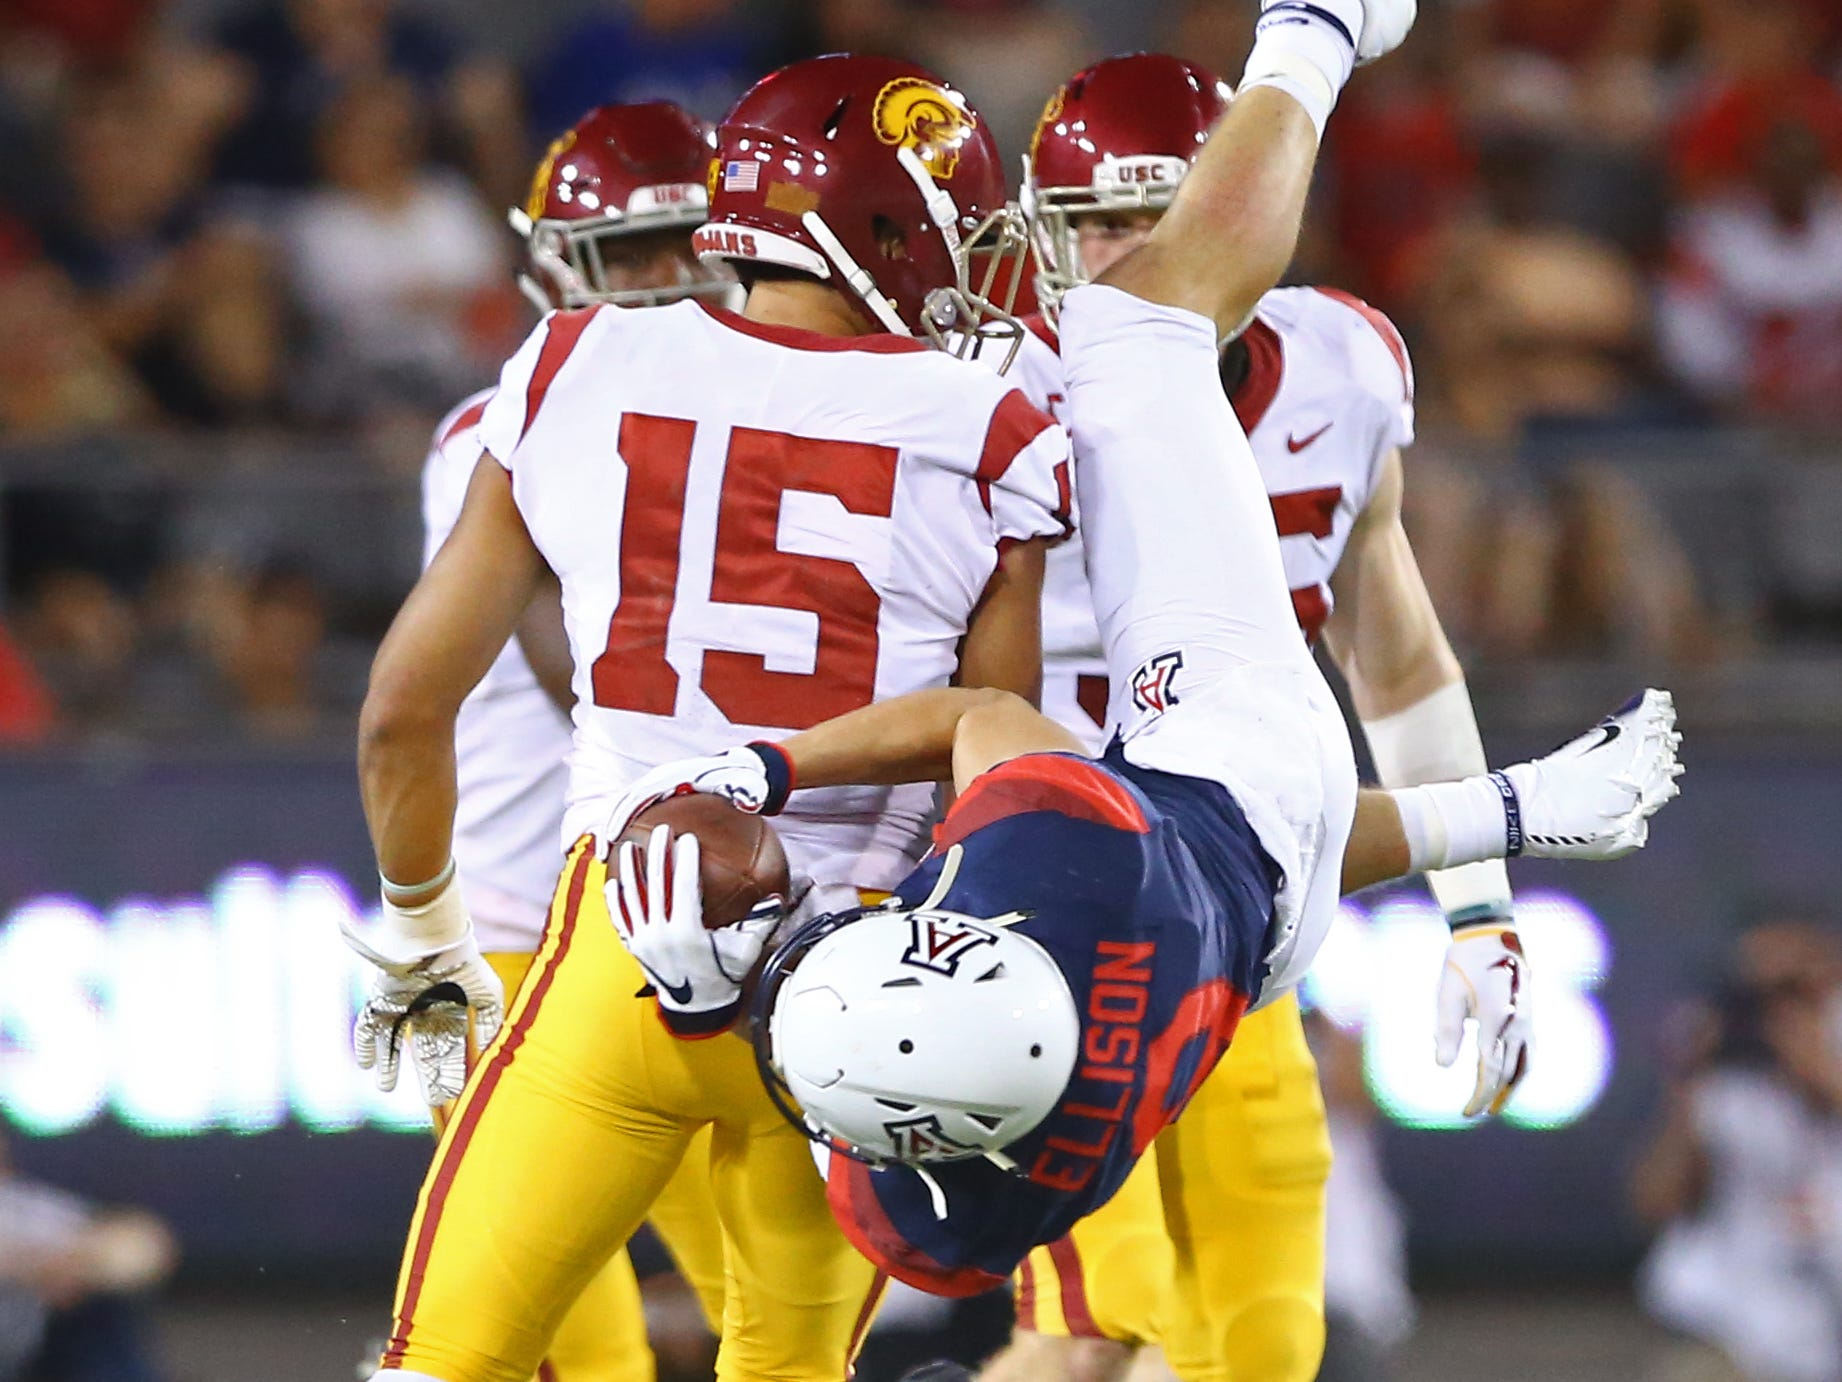 Sep 29, 2018; Tucson, AZ, USA; Arizona Wildcats wide receiver Tony Ellison (9) is upended by Southern California Trojans safety Talanoa Hufanga (15) in the first half at Arizona Stadium. Mandatory Credit: Mark J. Rebilas-USA TODAY Sports